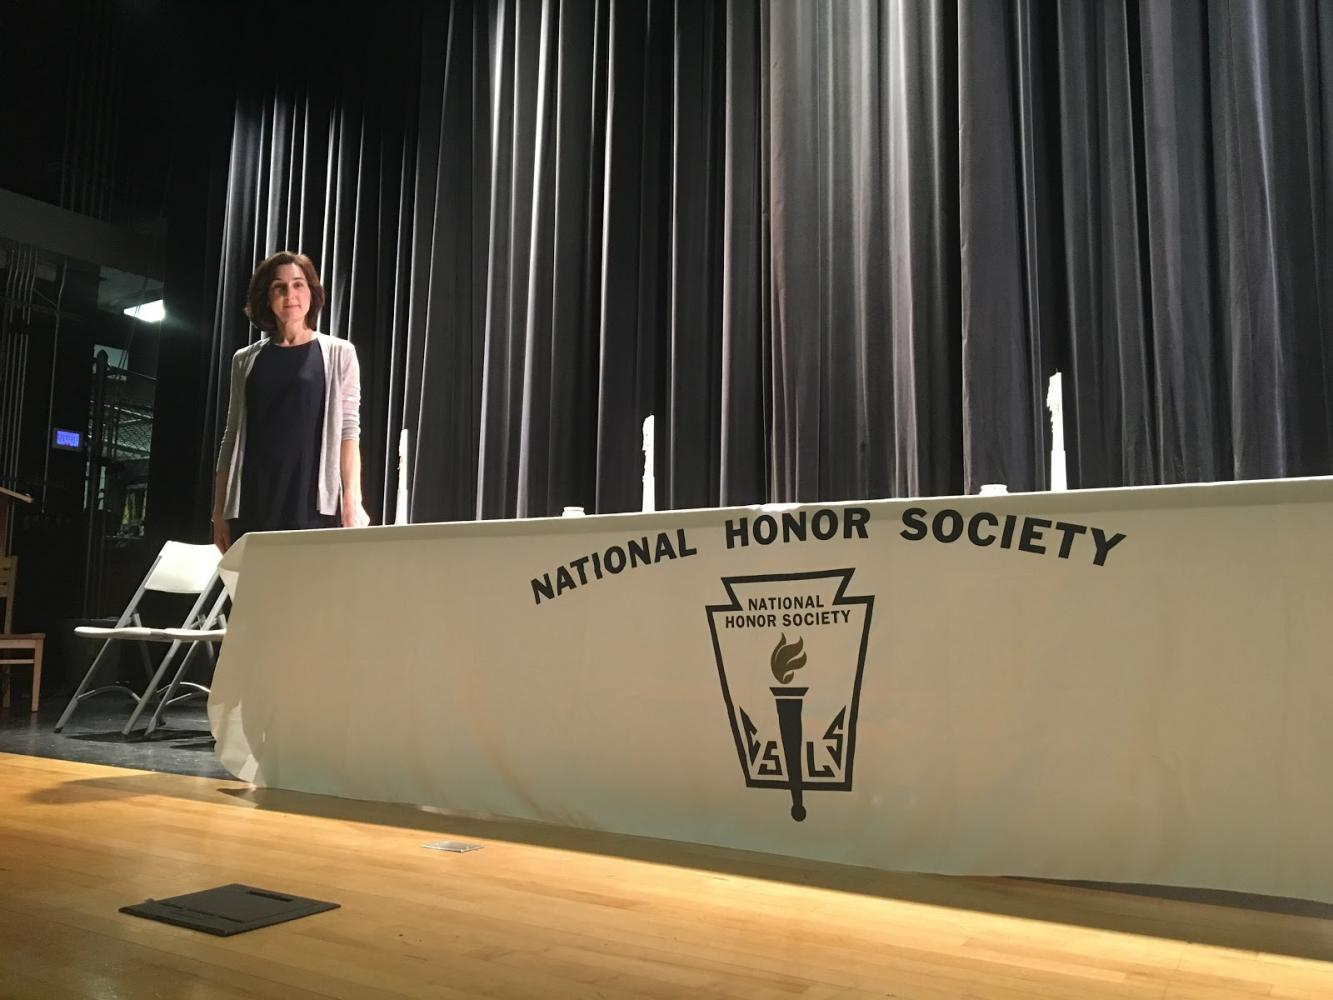 National Honor Society adviser, Donna Maasarani poses for a photo after the induction ceremony.